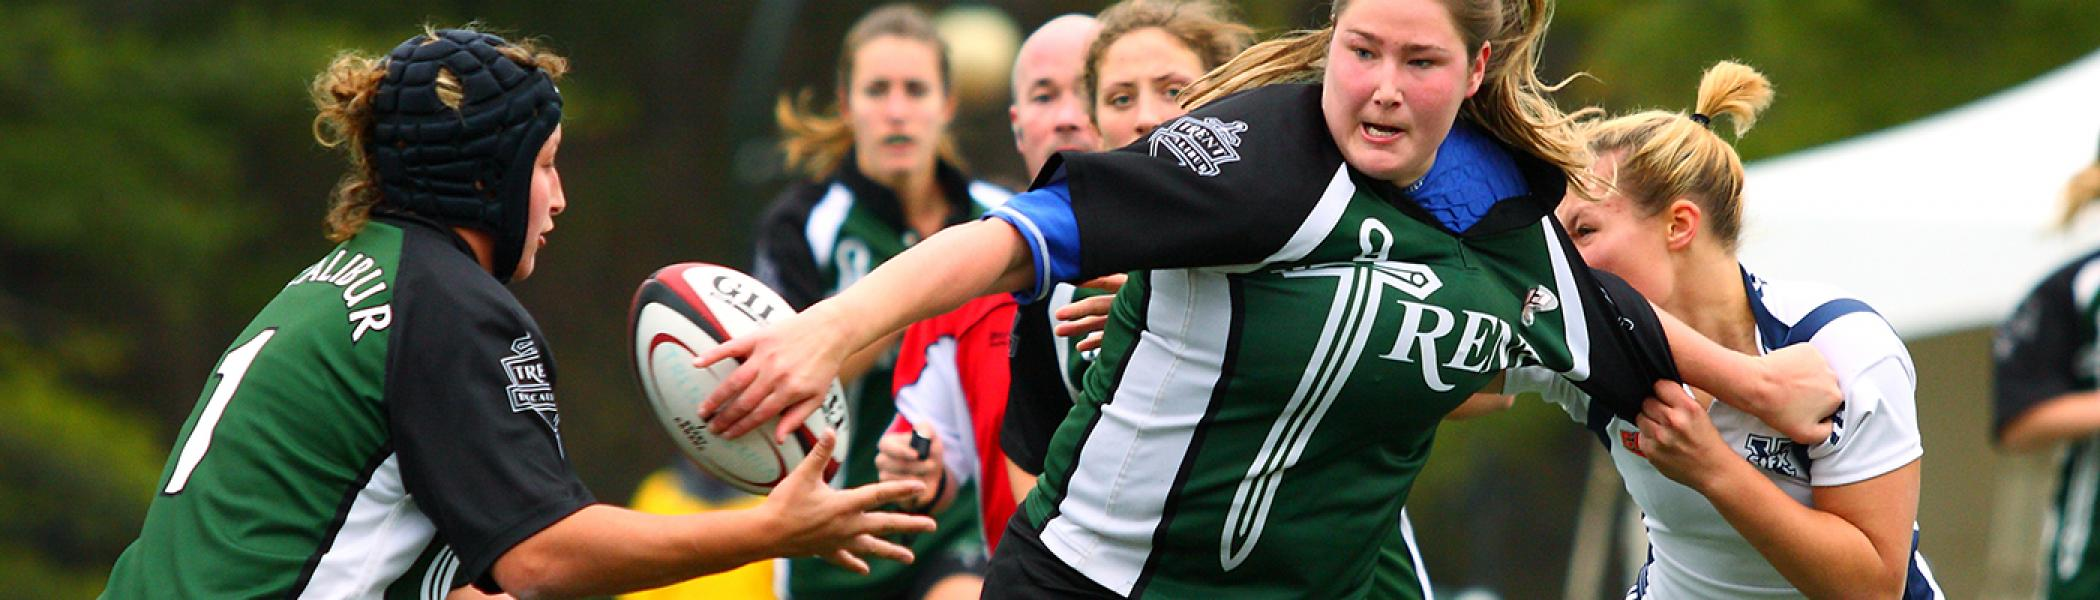 Women's outdoor rugby game in the fall at the Justin Chiu stadium